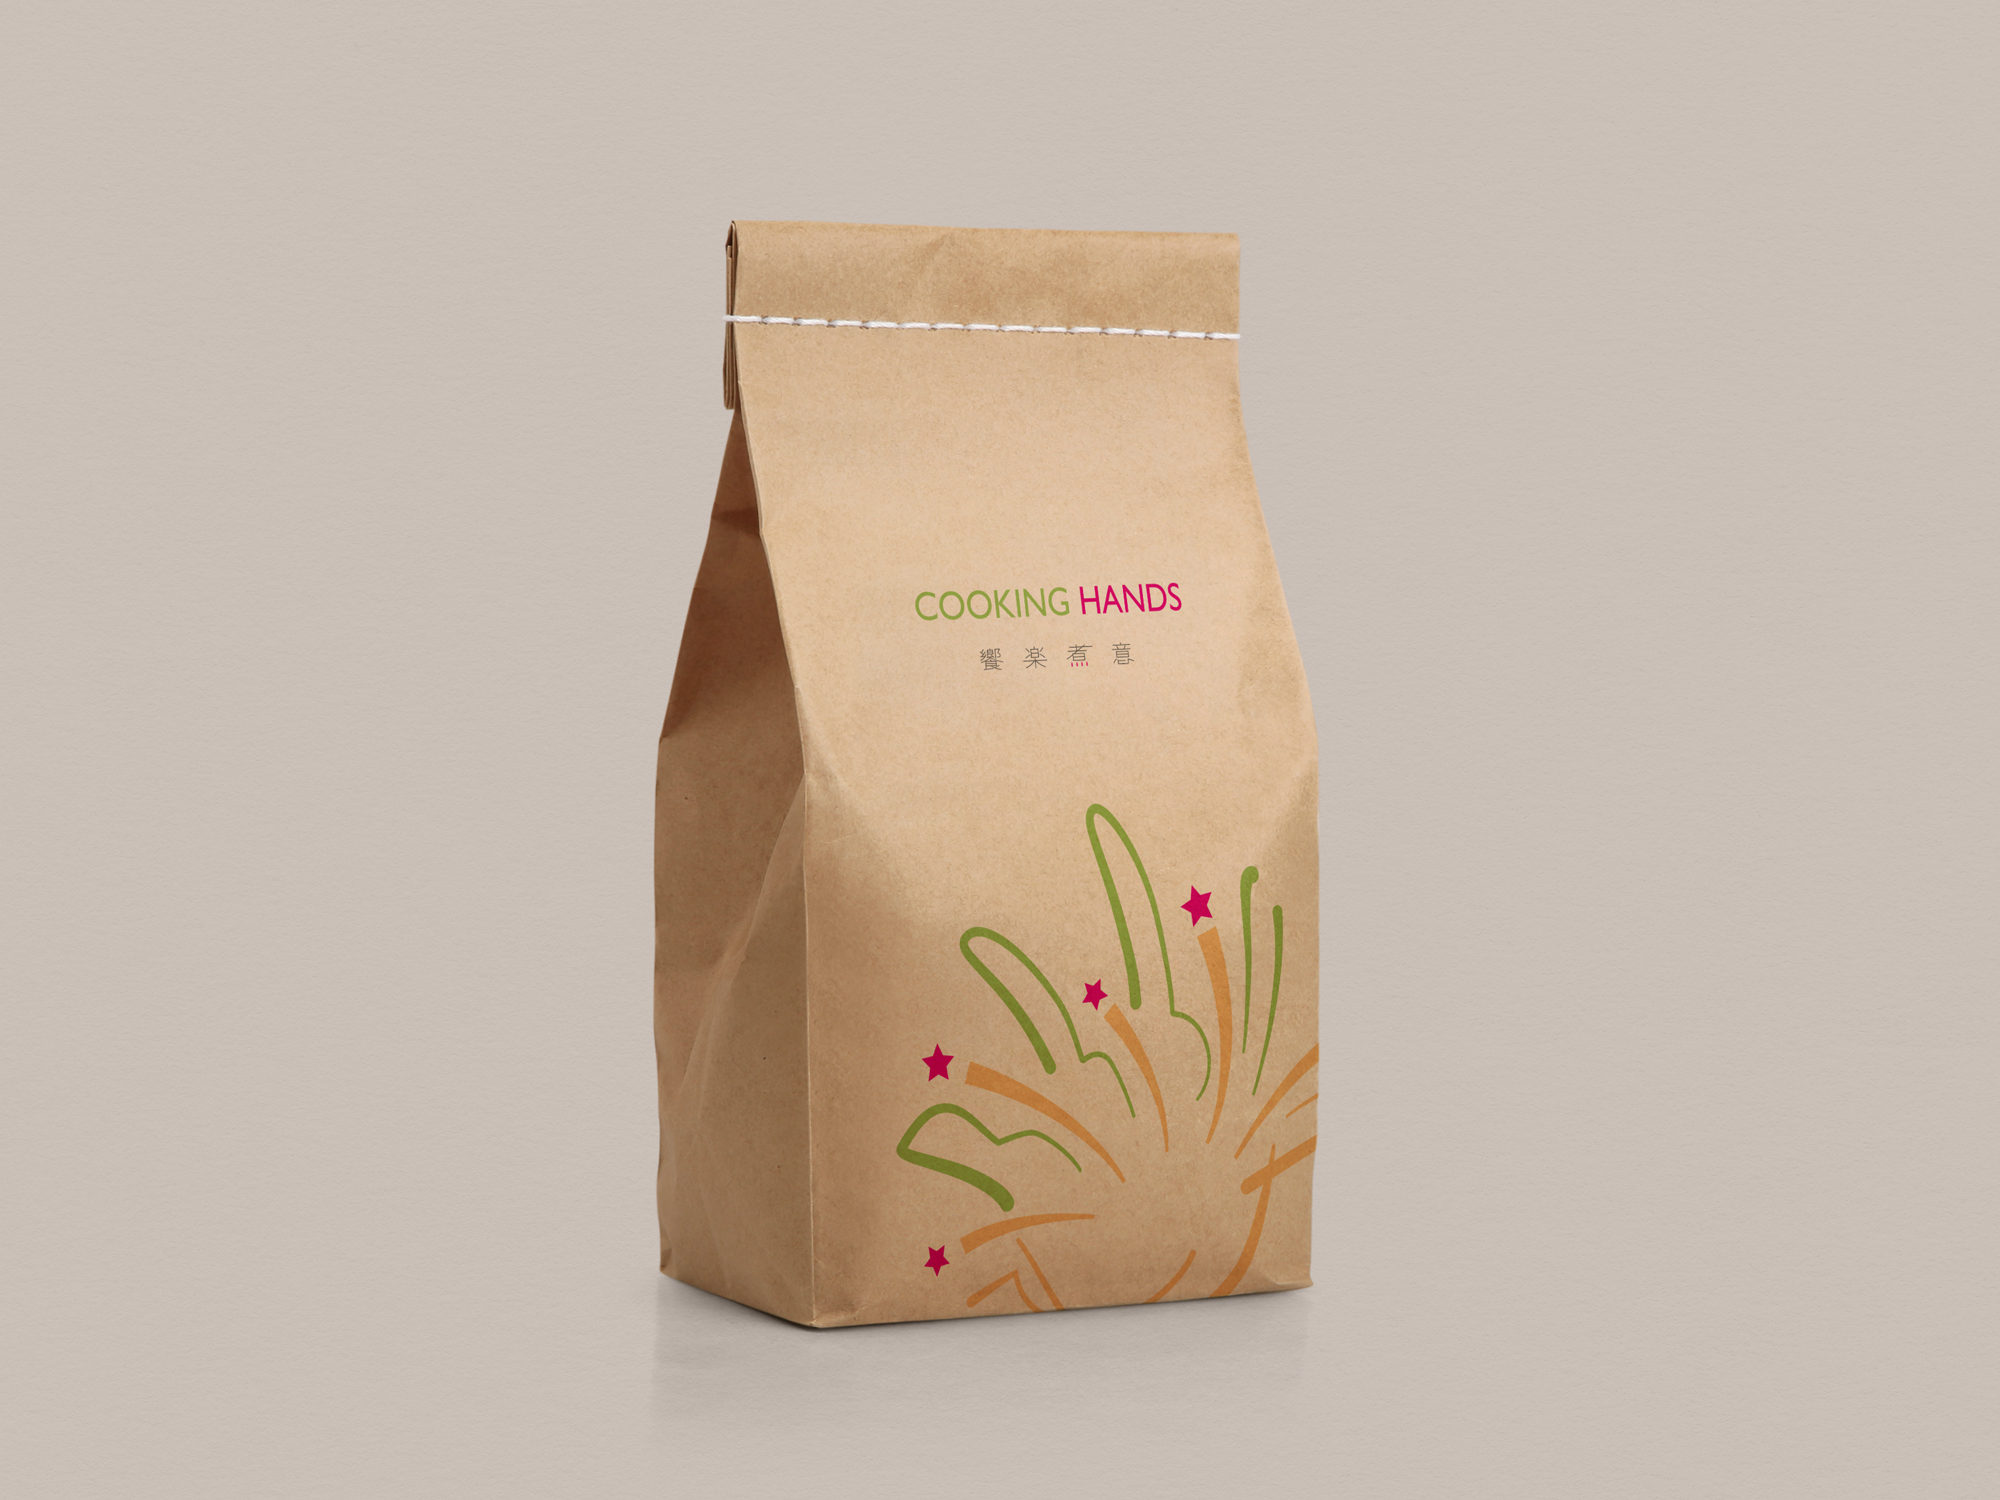 Cooking Hands Free Stitched Craft Paper Bag Mockup